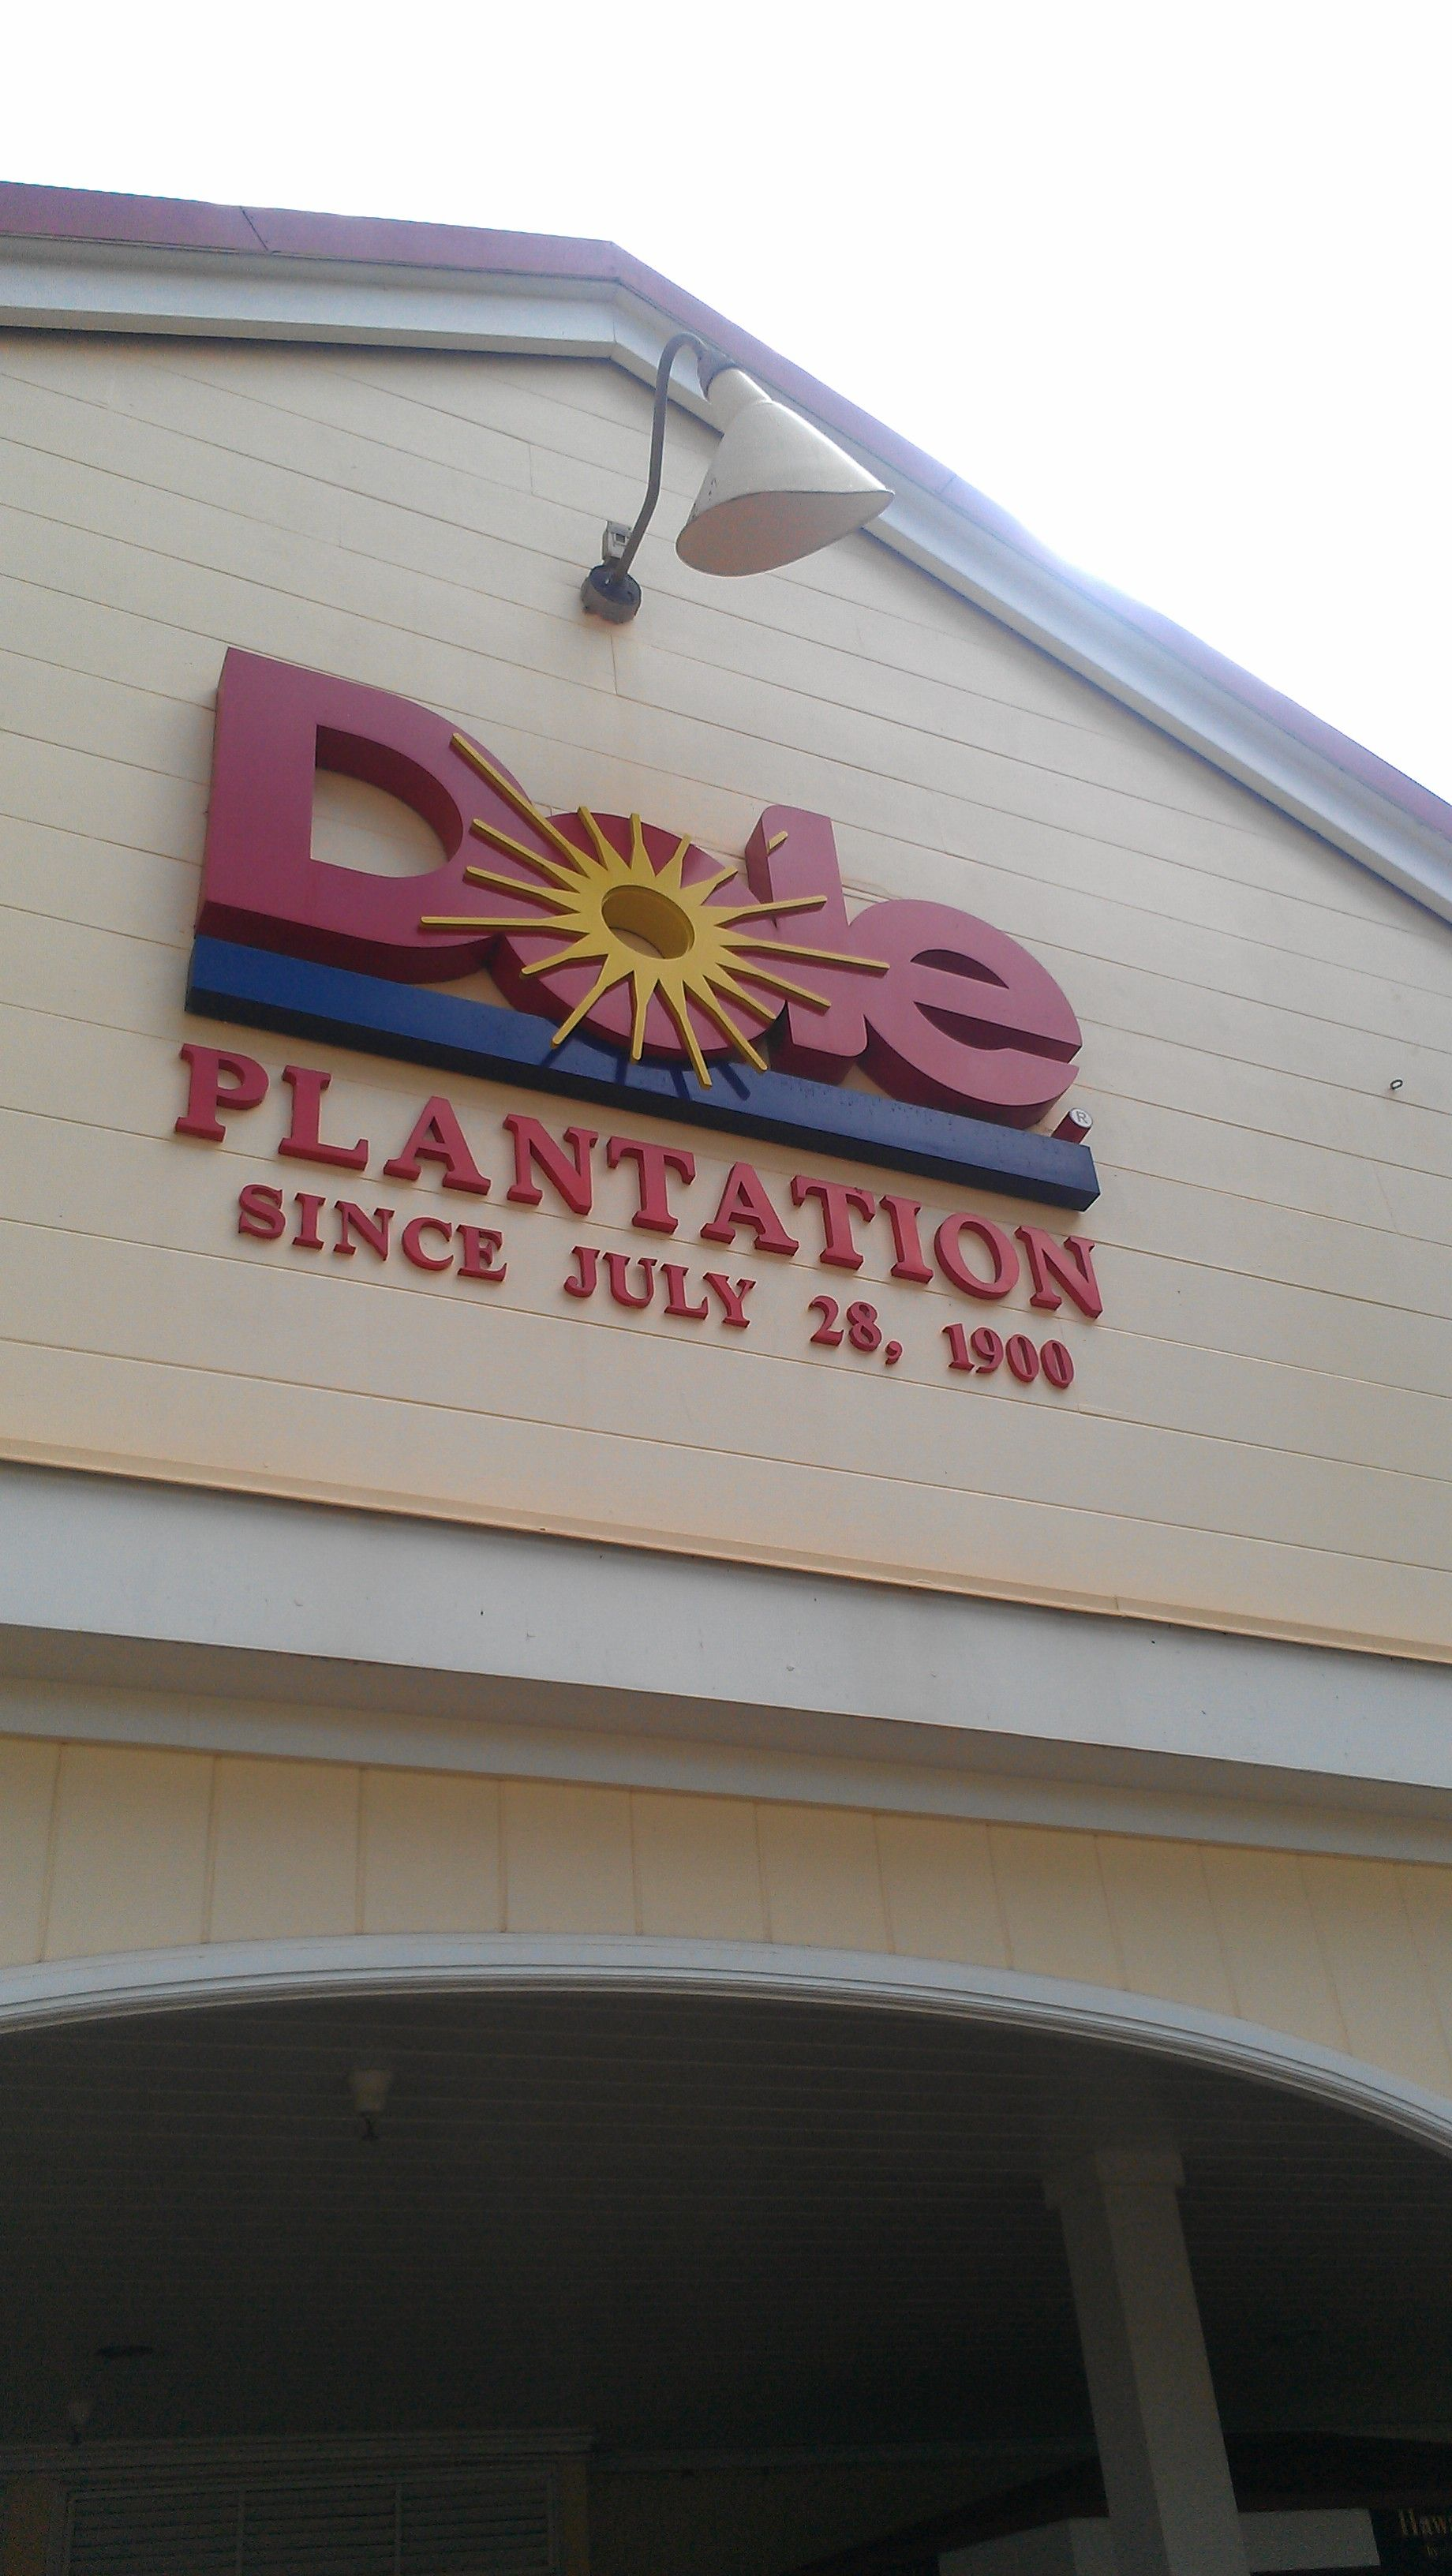 Stopped by the Dole plant, which has the world's largest maze. Amazing!